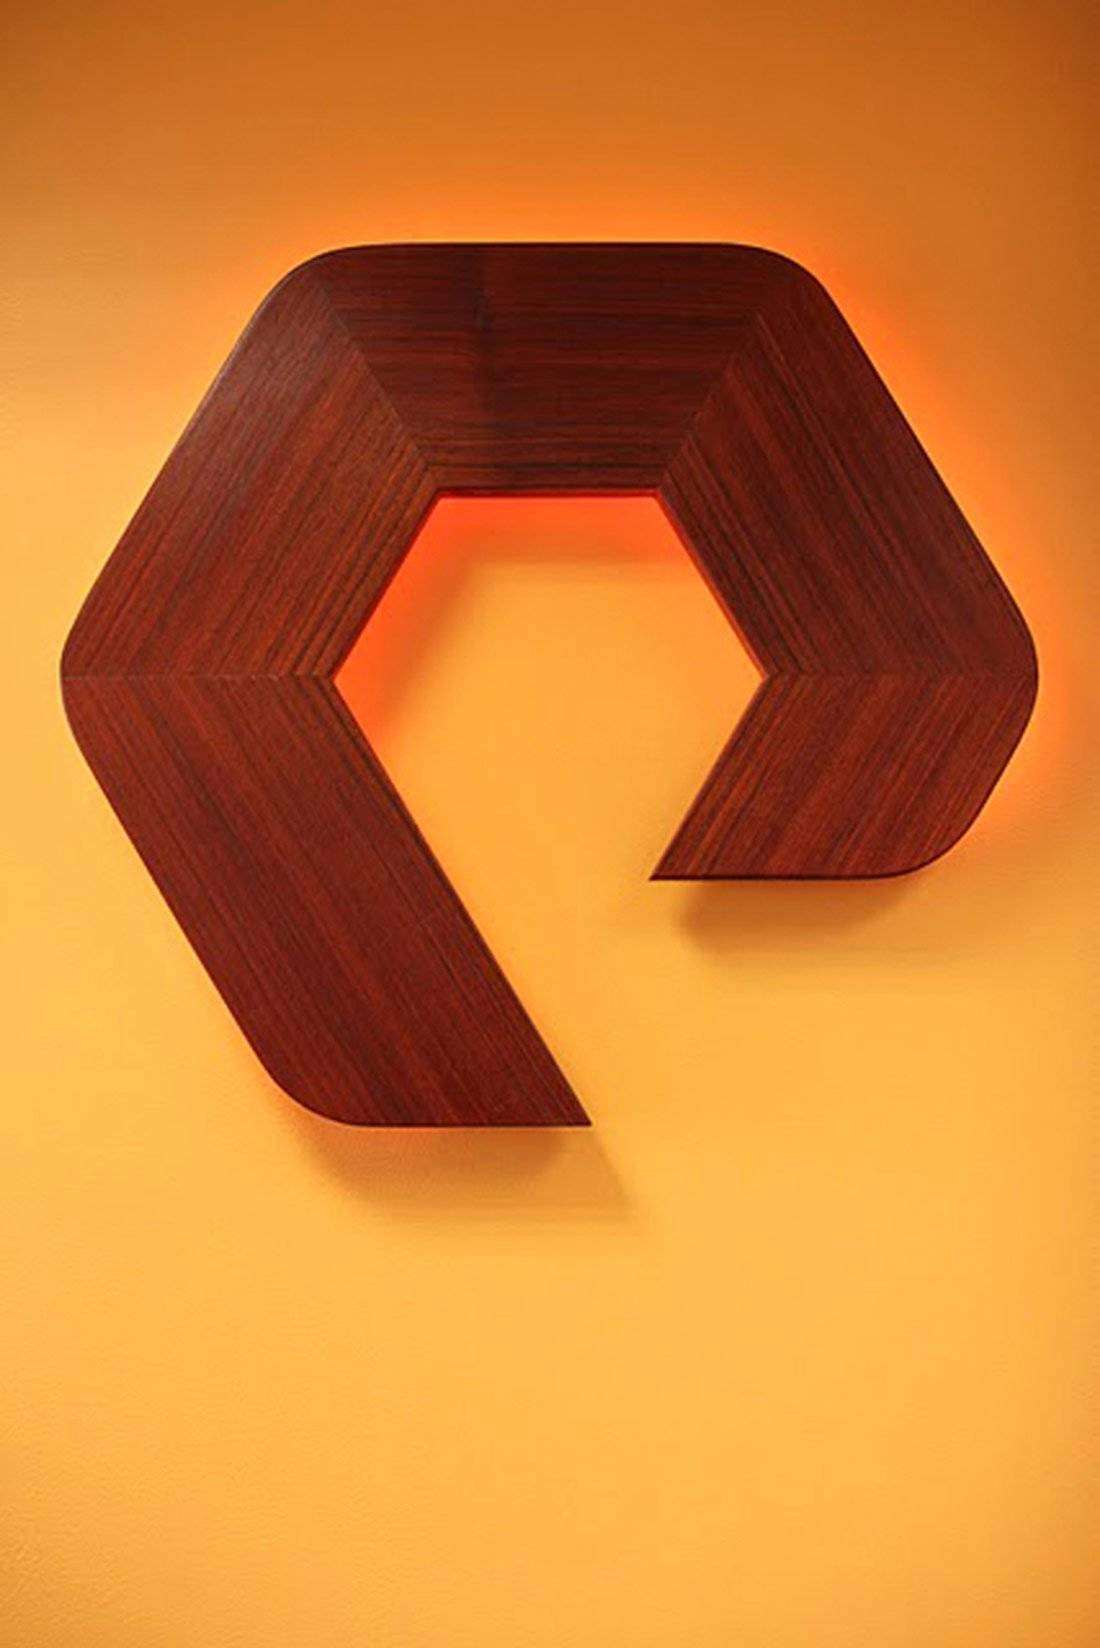 purestorage backlit wood logo sign